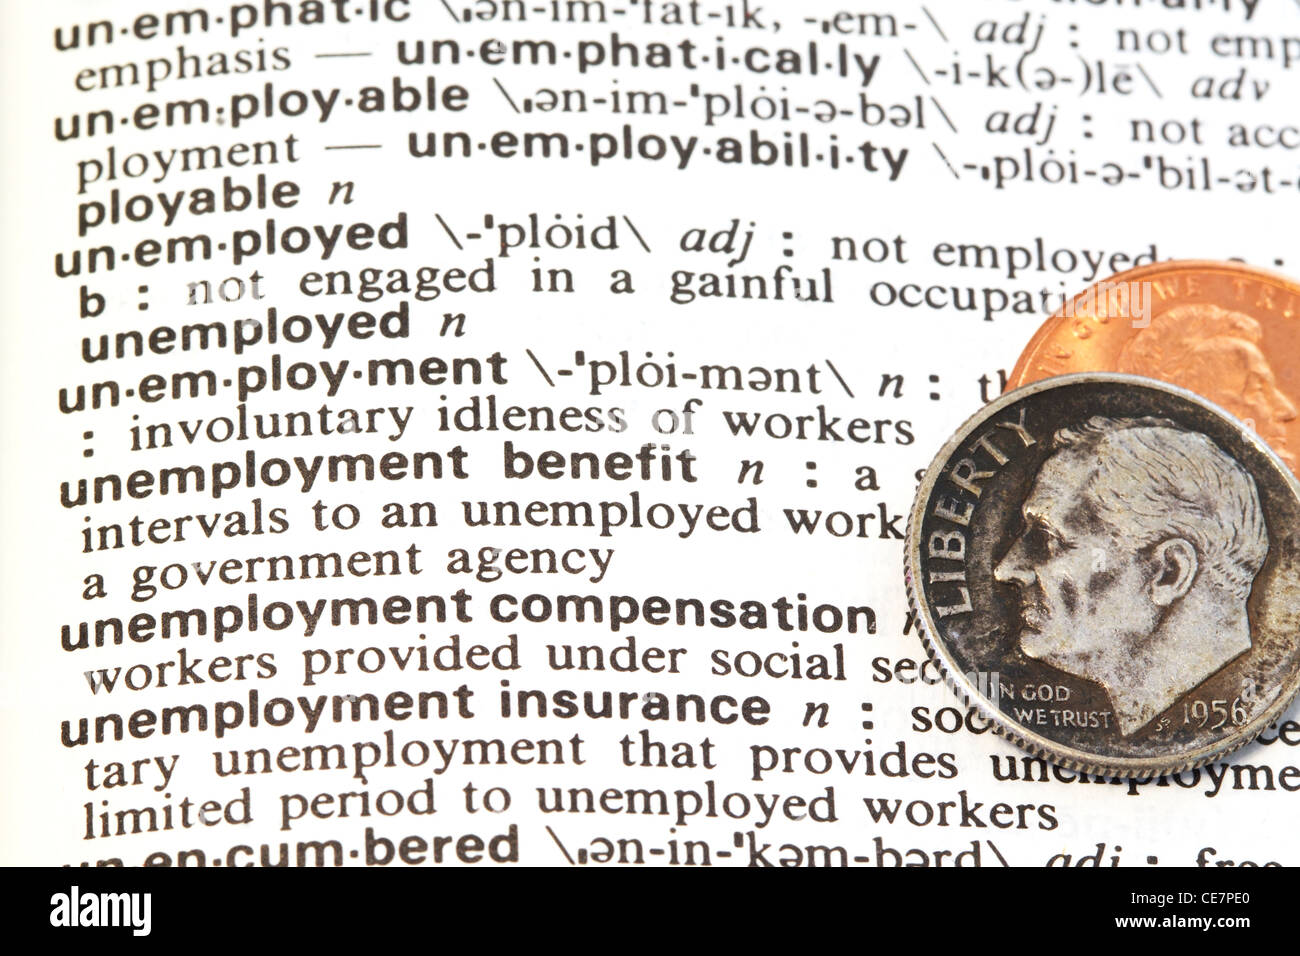 Unemployment benefits. - Stock Image